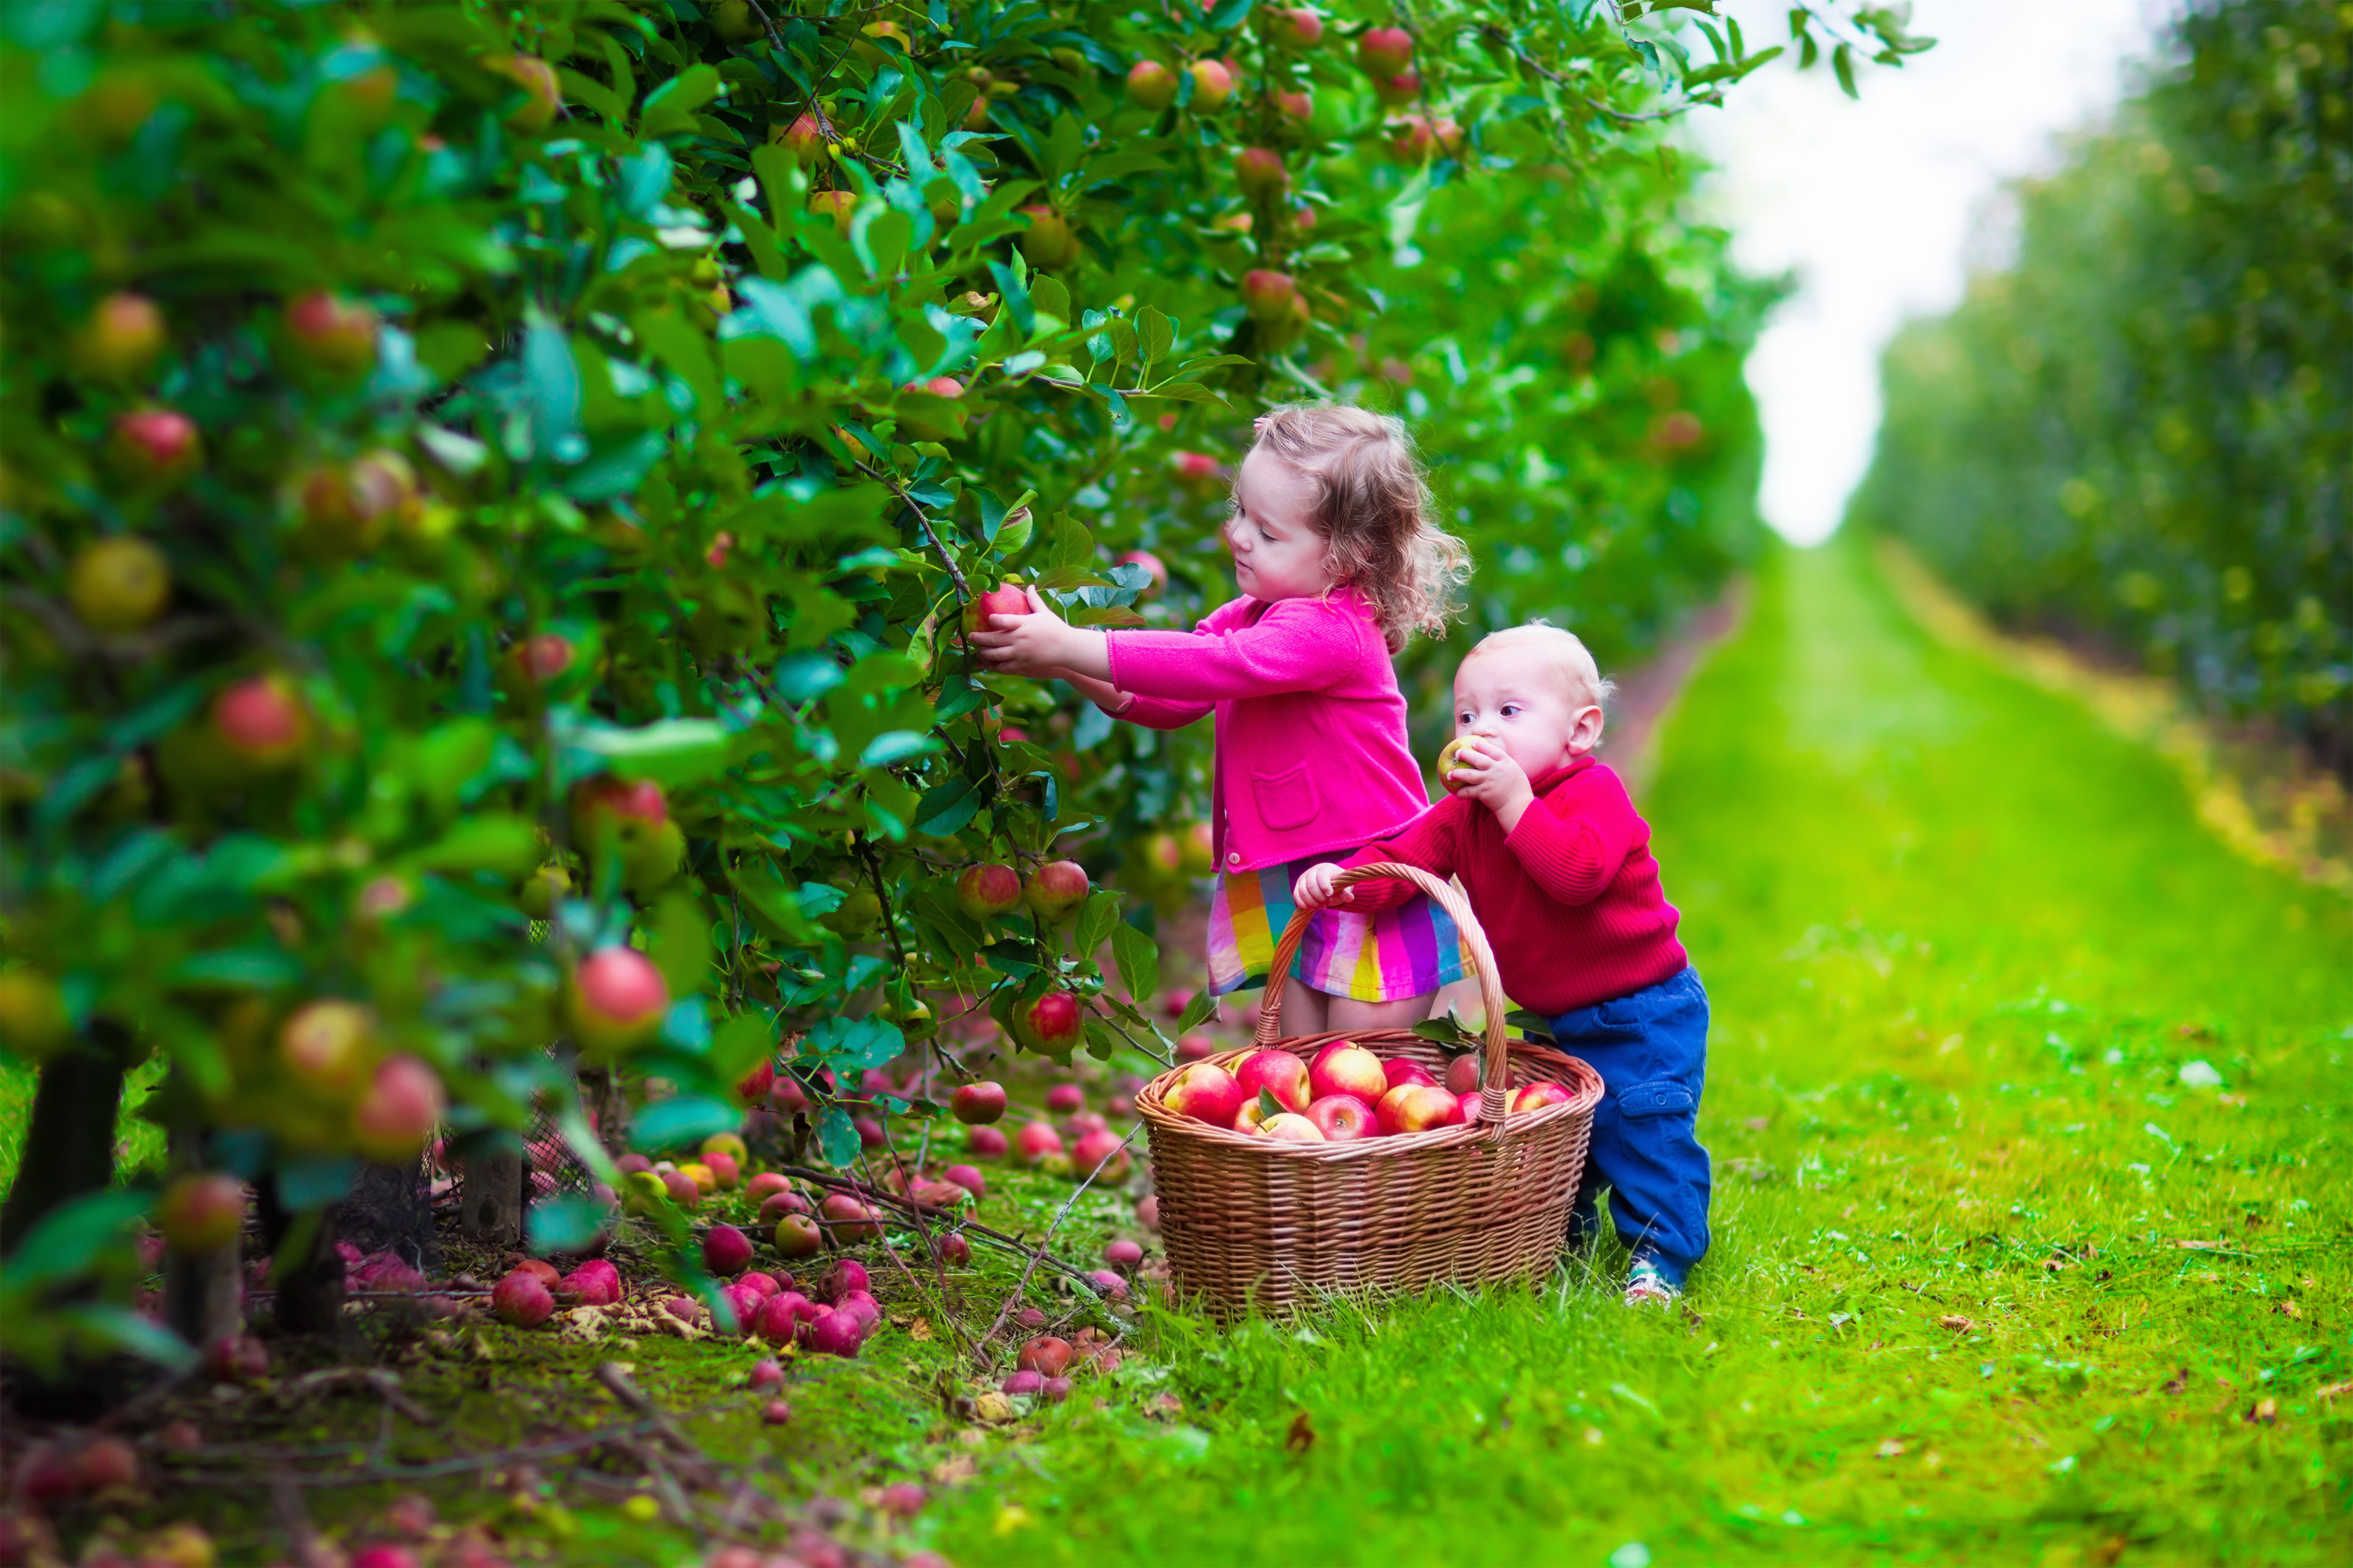 Children Picking Apples in Autumn